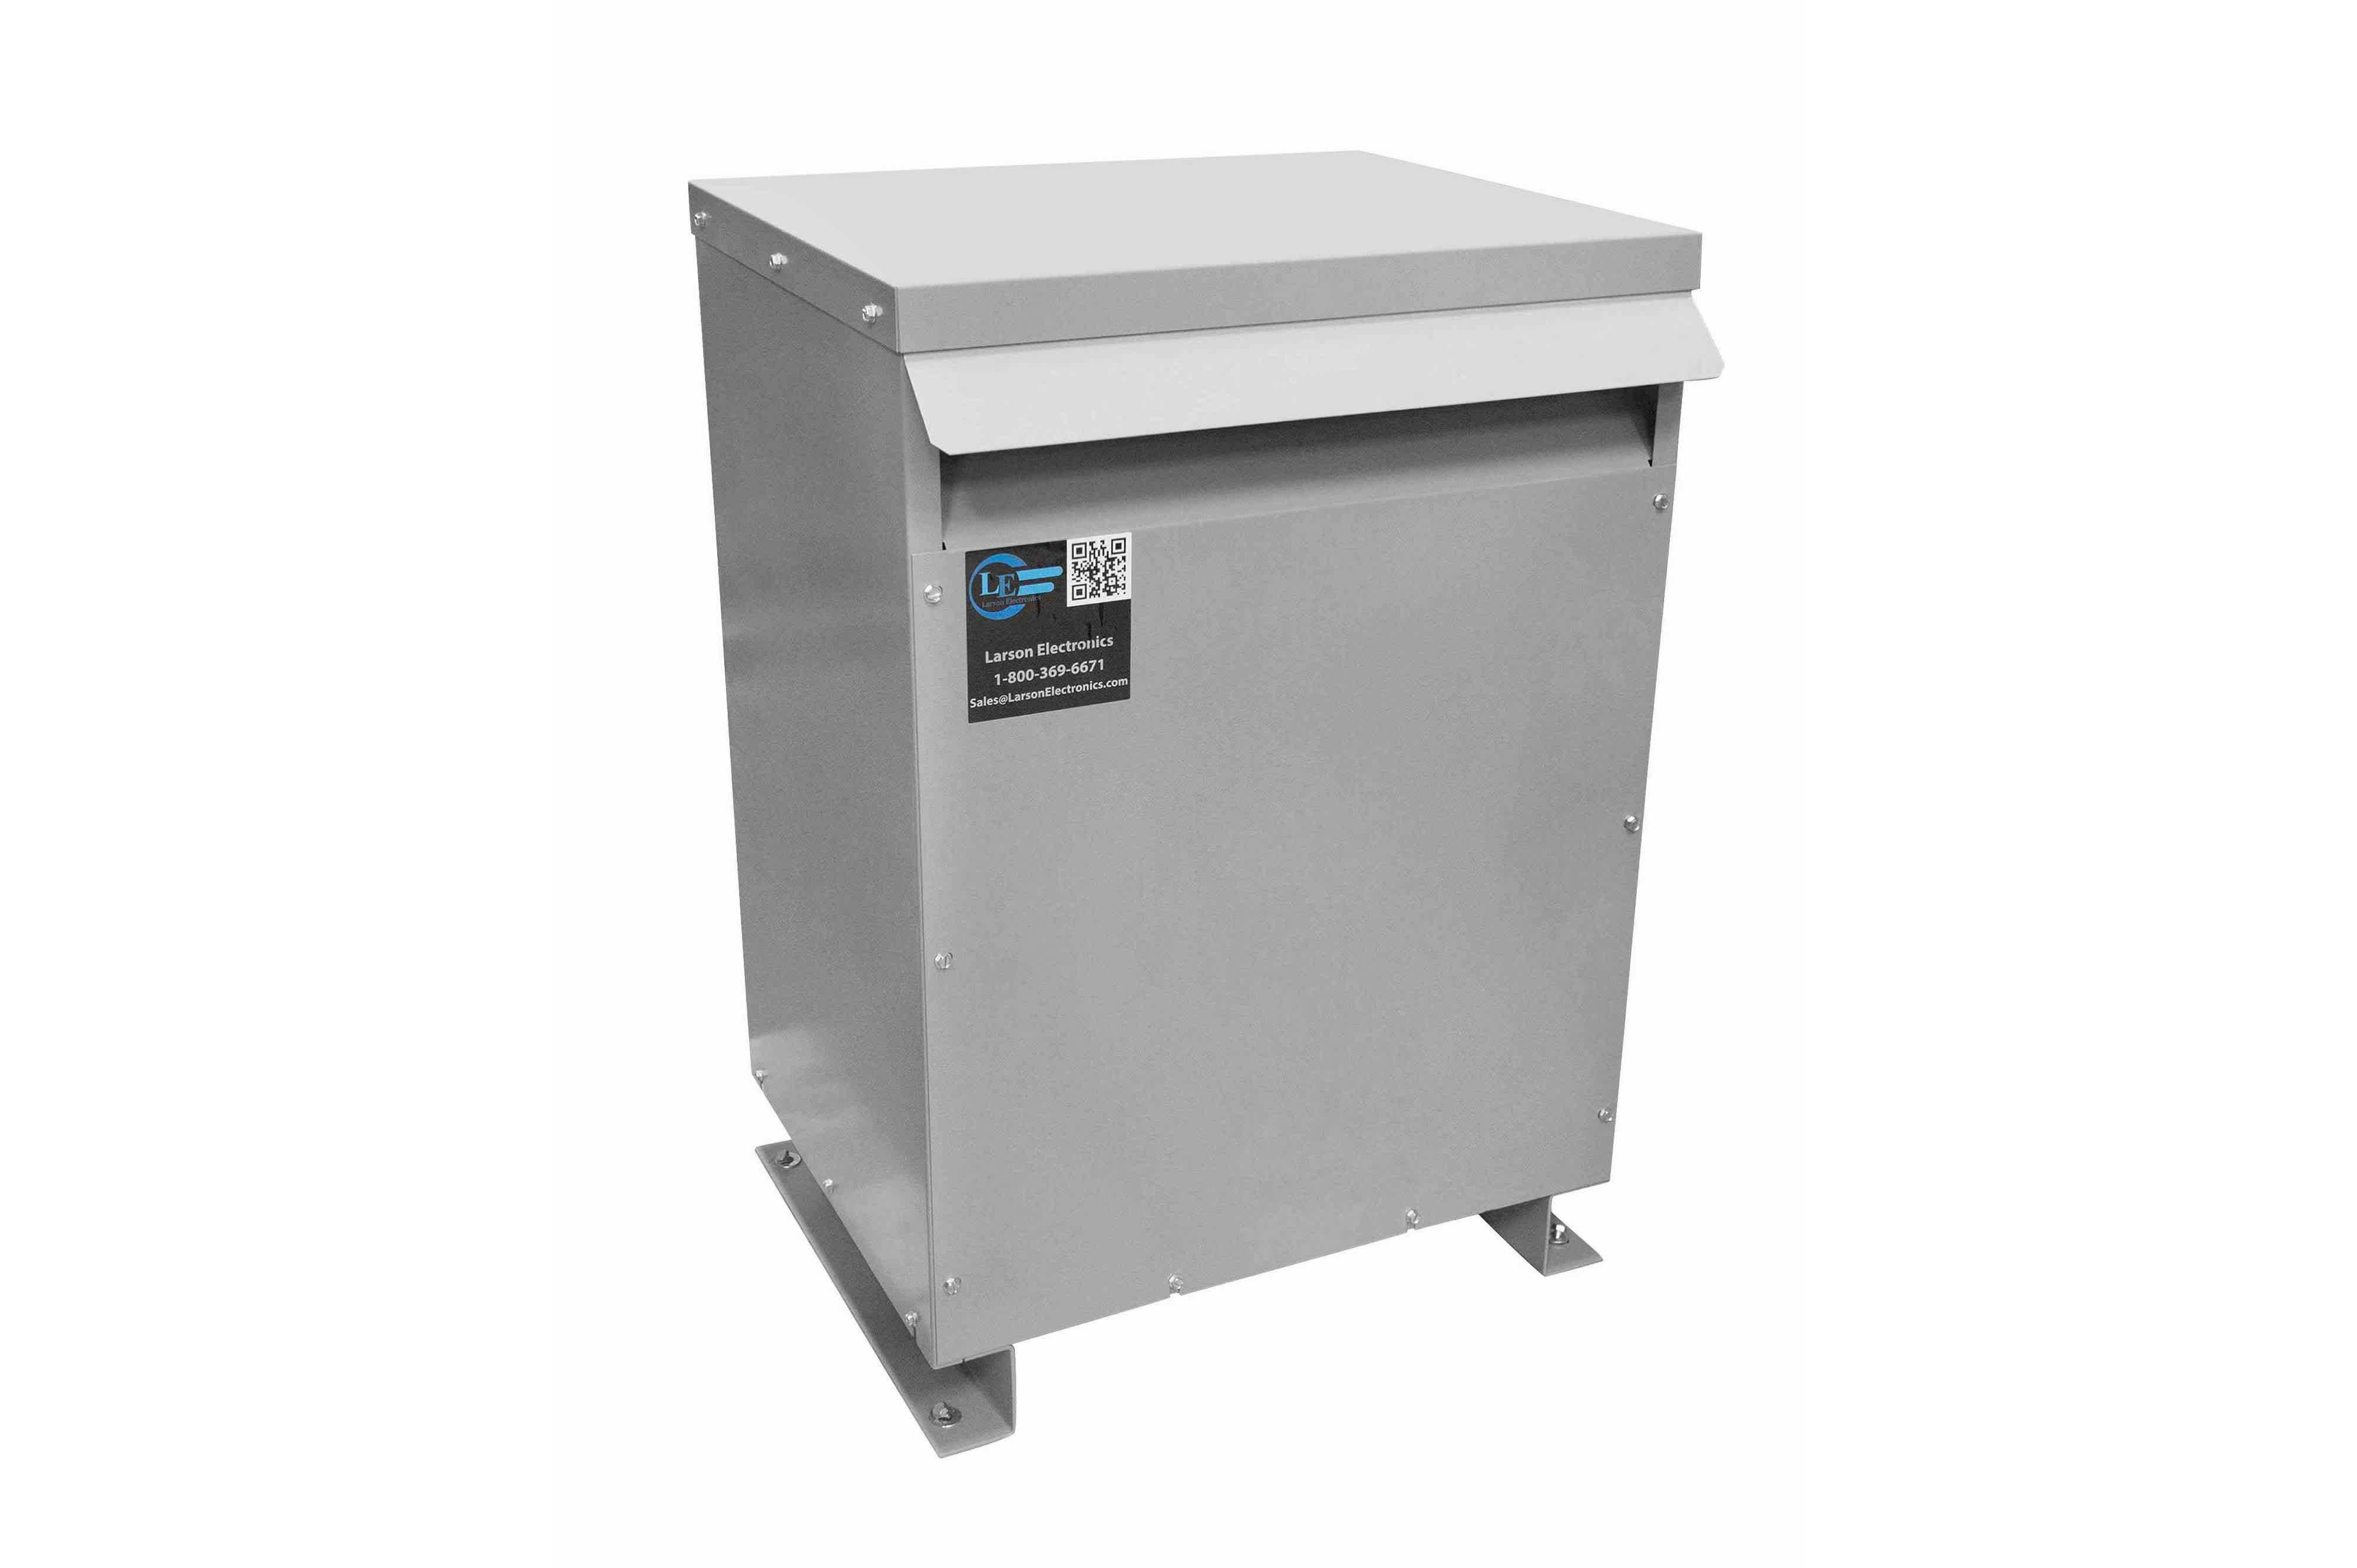 1000 kVA 3PH DOE Transformer, 415V Delta Primary, 208Y/120 Wye-N Secondary, N3R, Ventilated, 60 Hz